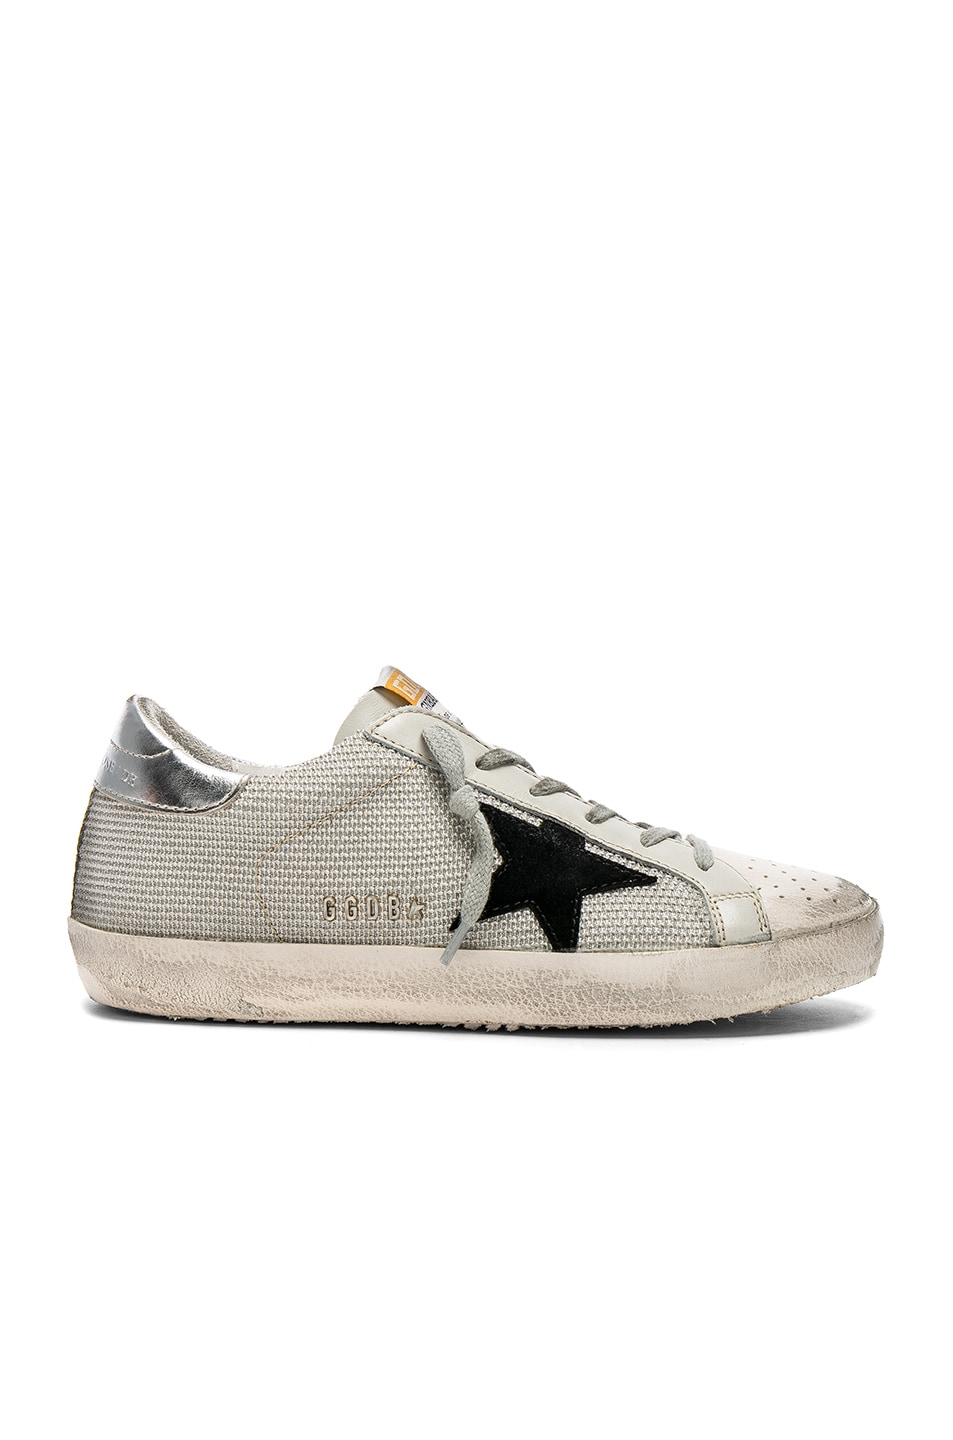 Image 1 of Golden Goose Superstar Sneakers in White Cord & Silver Lurex